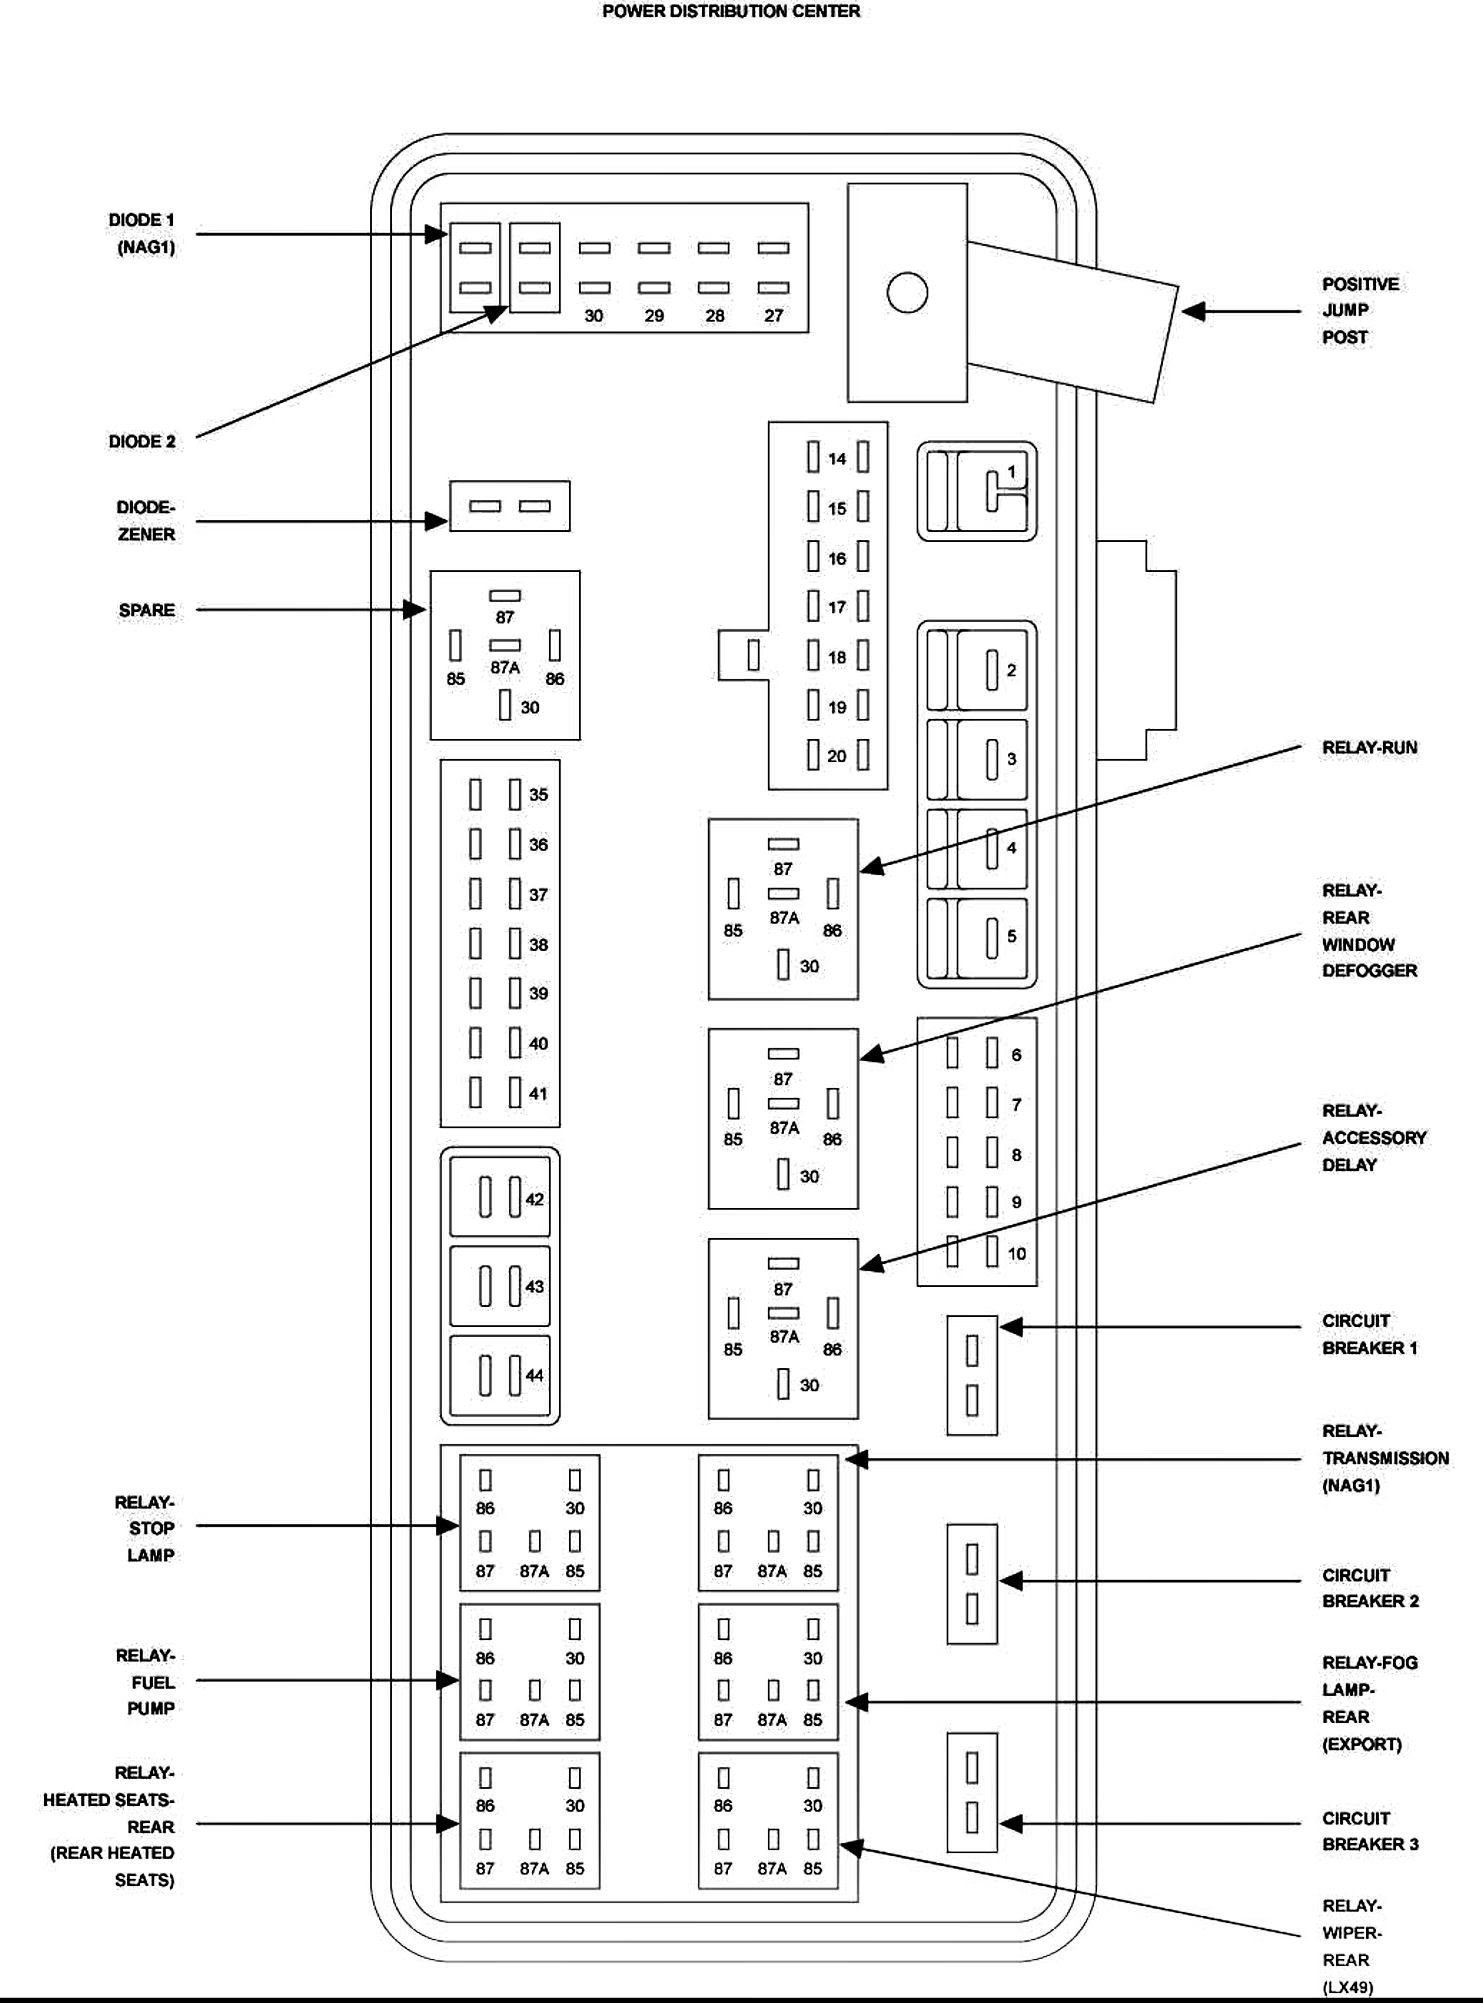 80 [PDF] FUSE DIAGRAM FOR 06 DODGE CHARGER PRINTABLE